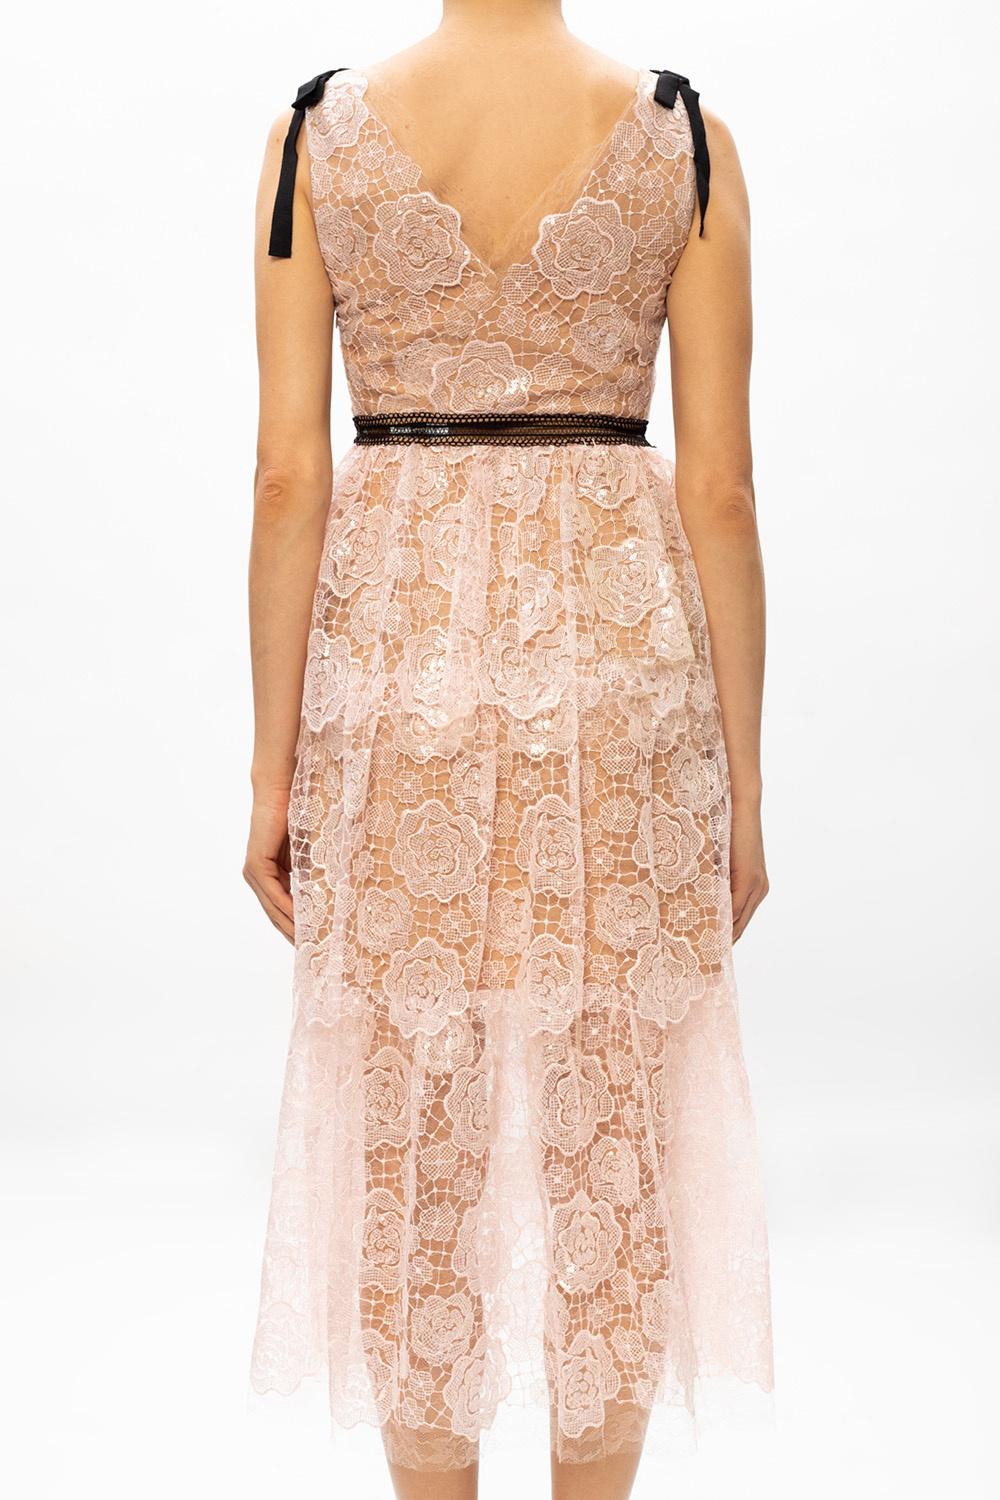 Self Portrait Openwork dress